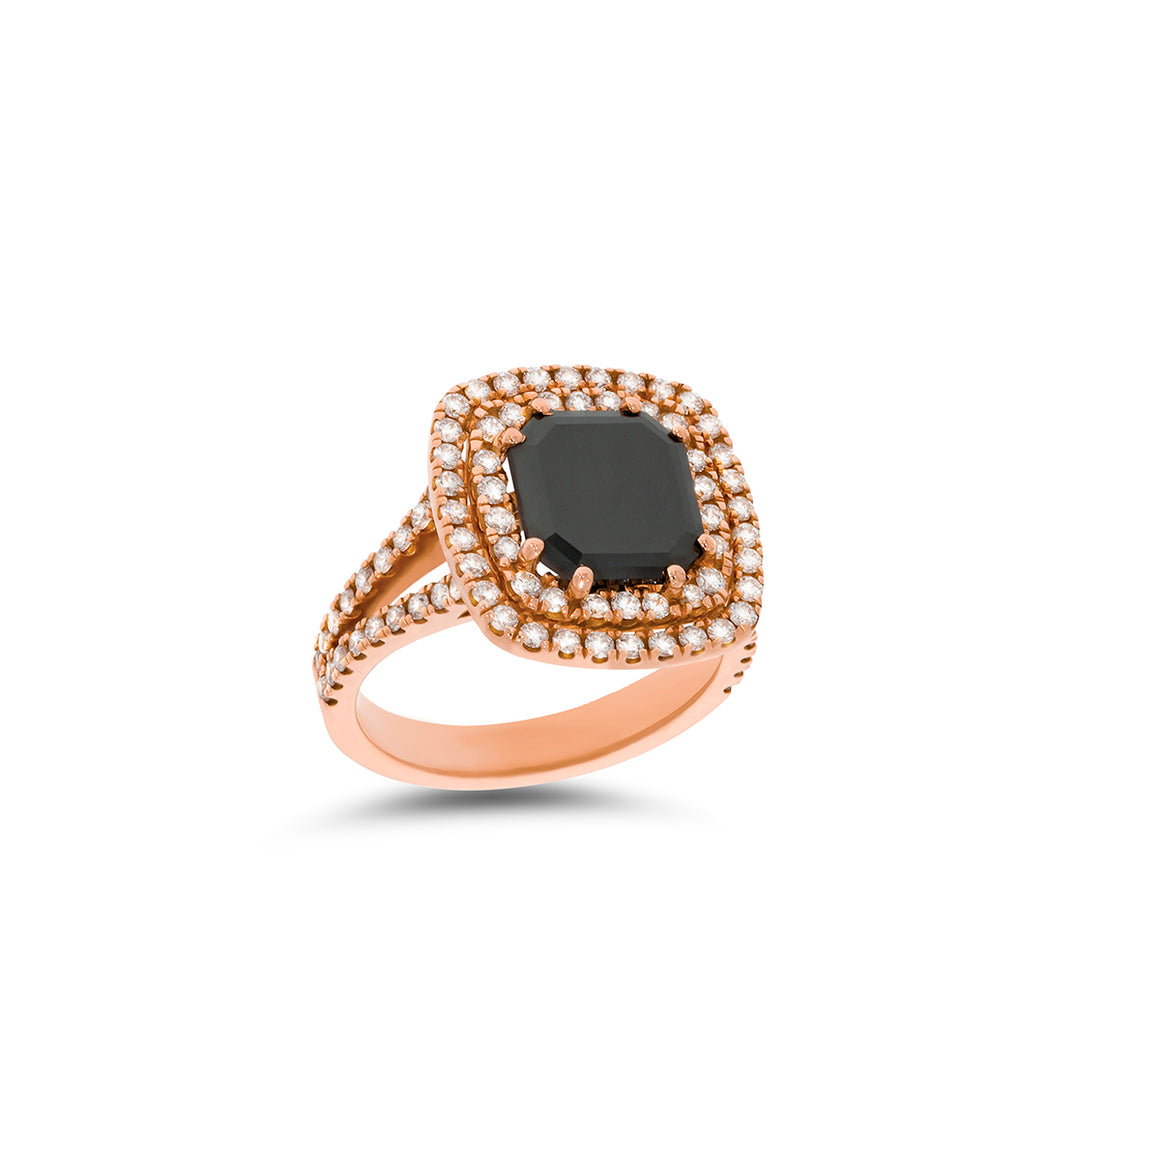 A special diamond ring with big (3.00 carat) Black diamond as a main stone